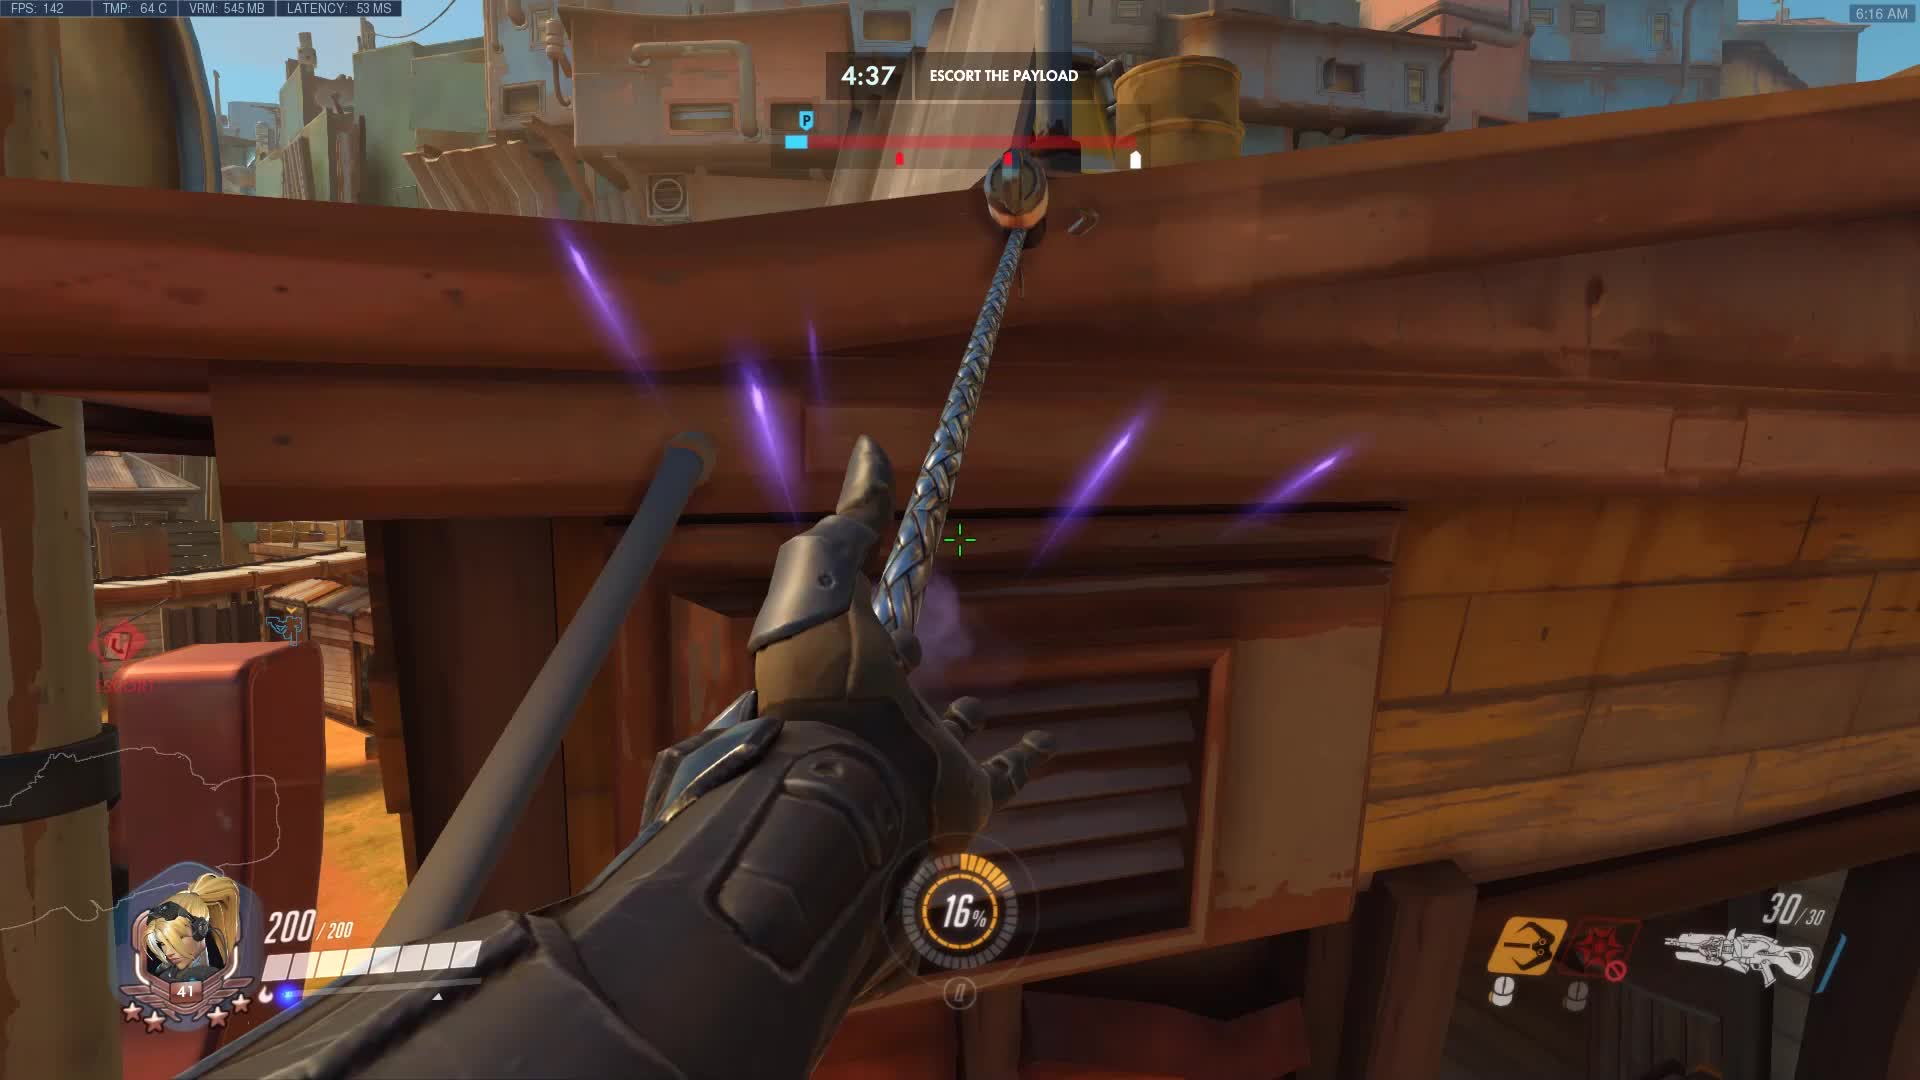 overwatch, OuLala GIFs